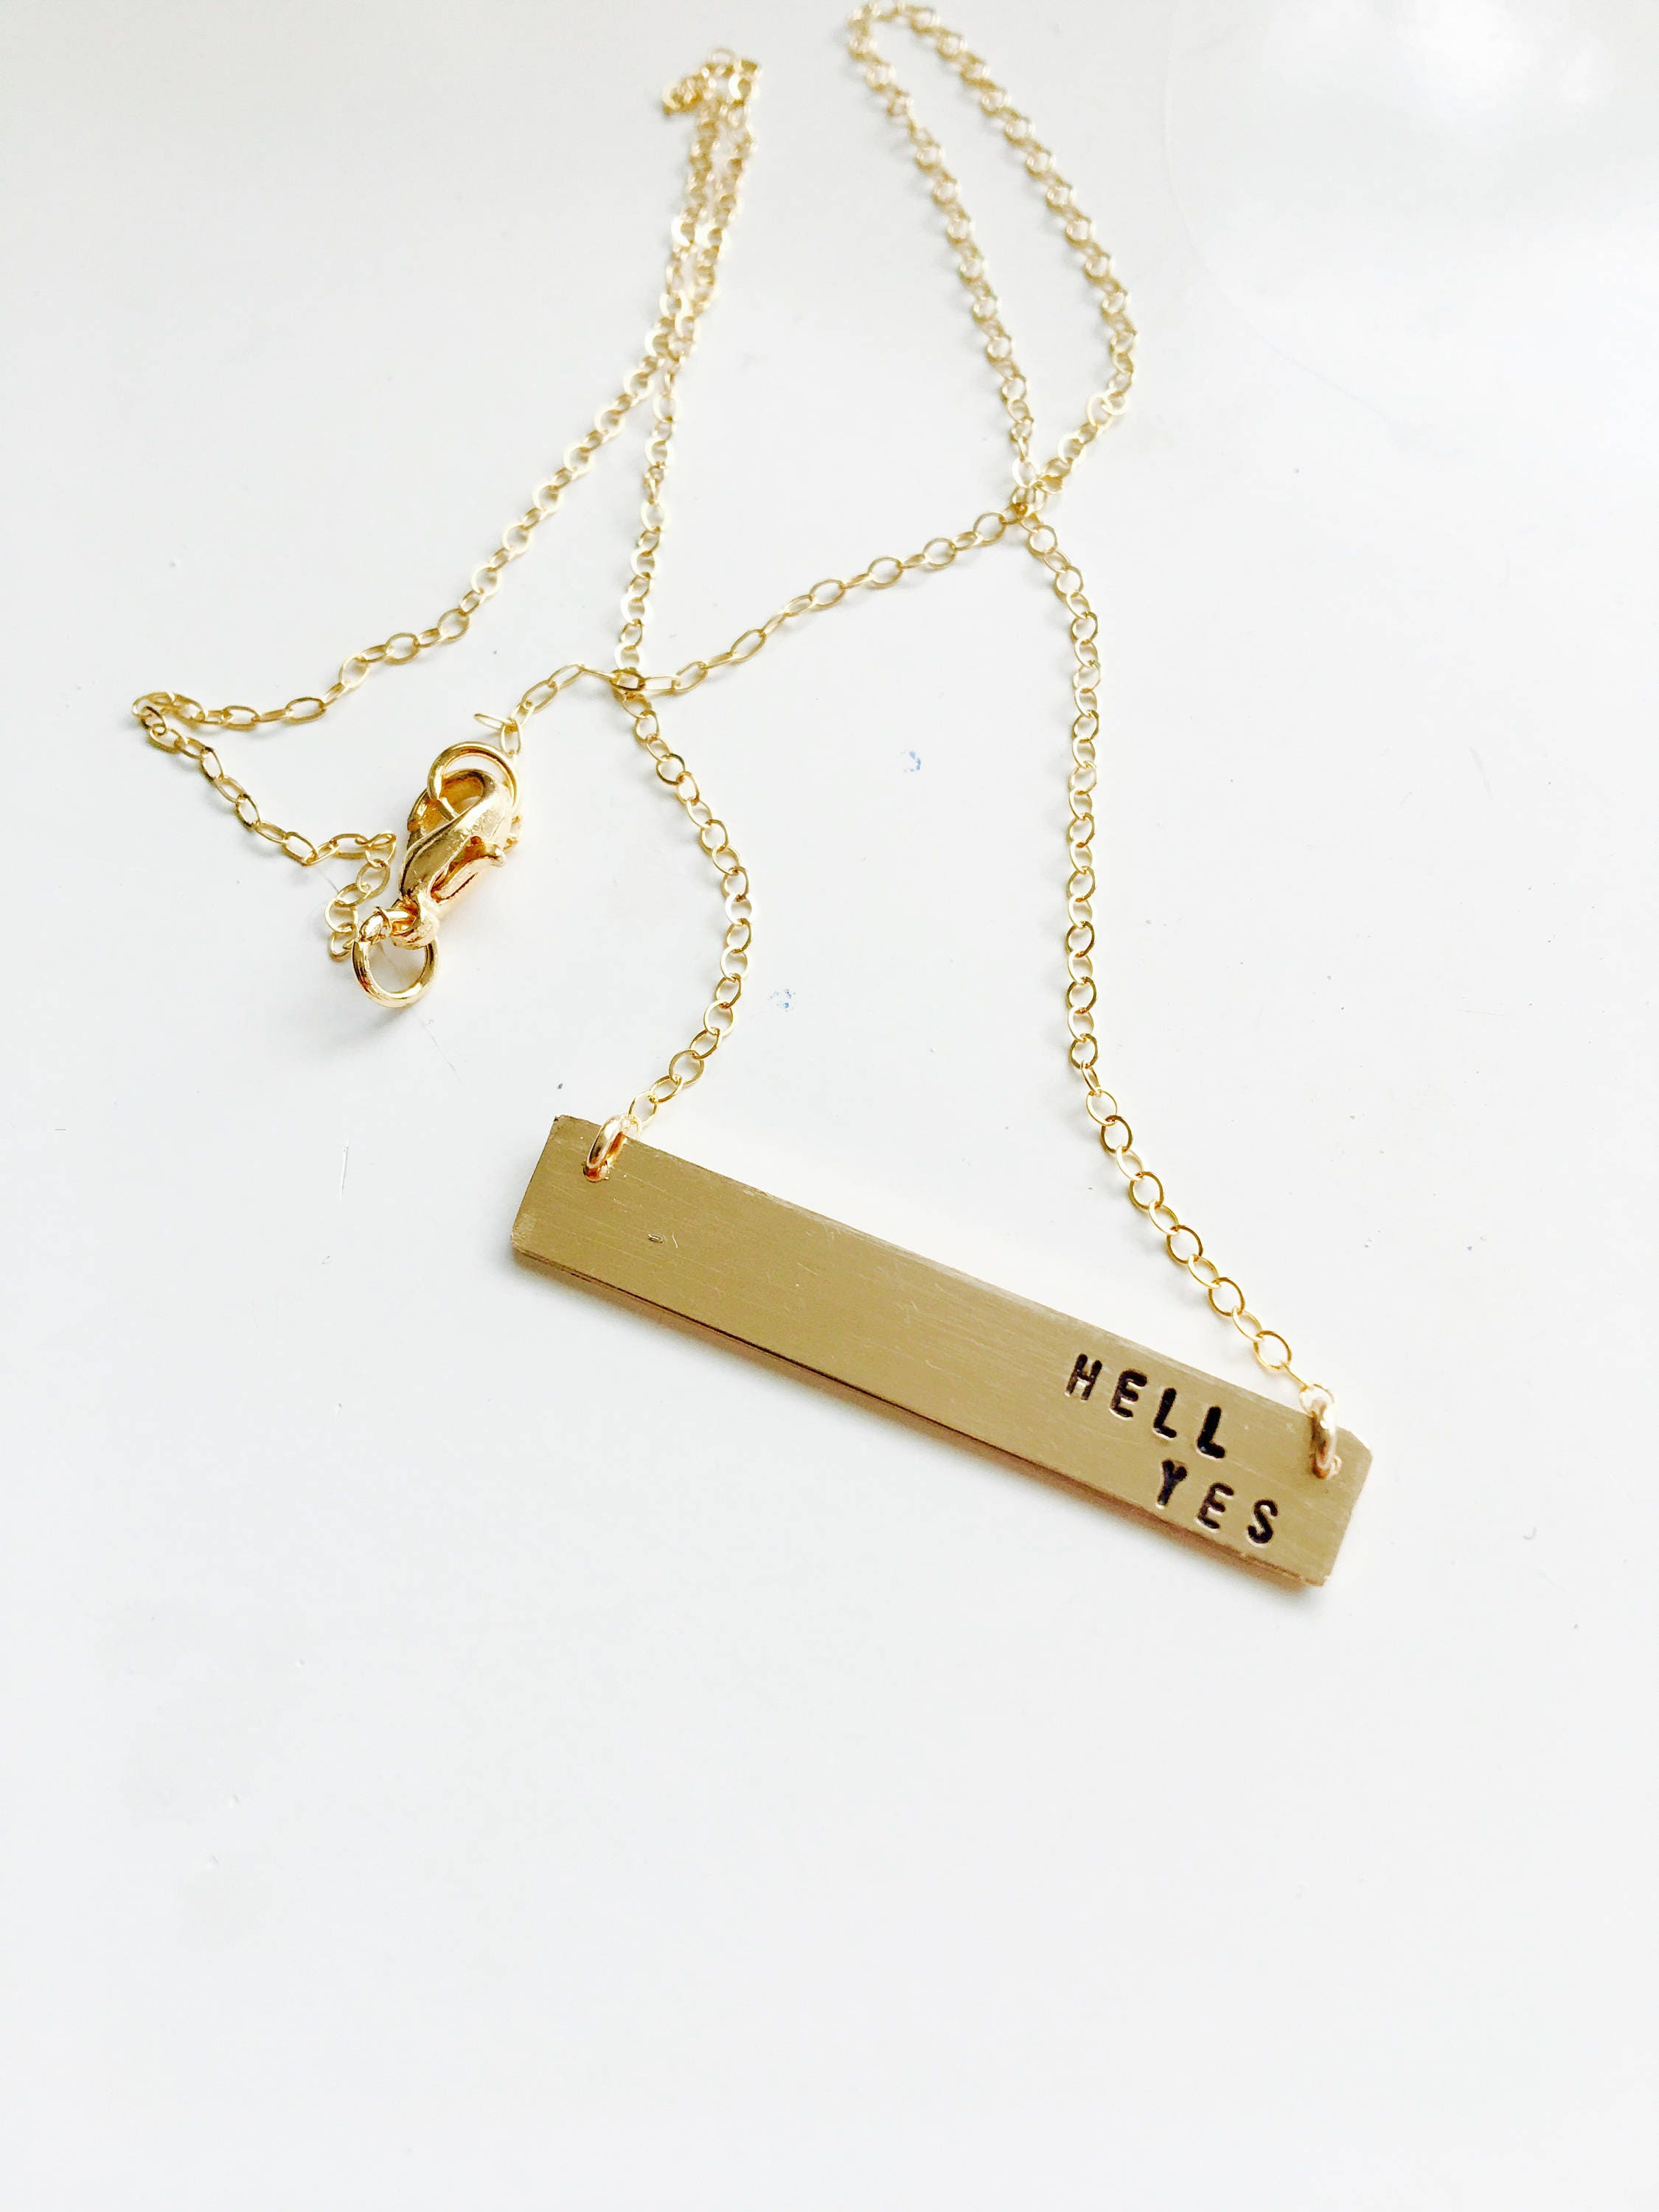 Hell Yeah// Gold Fill Bar Necklace// gold bar jewelry// sterling bar necklace// inspirational jewelry// hand stamped// womens jewelry